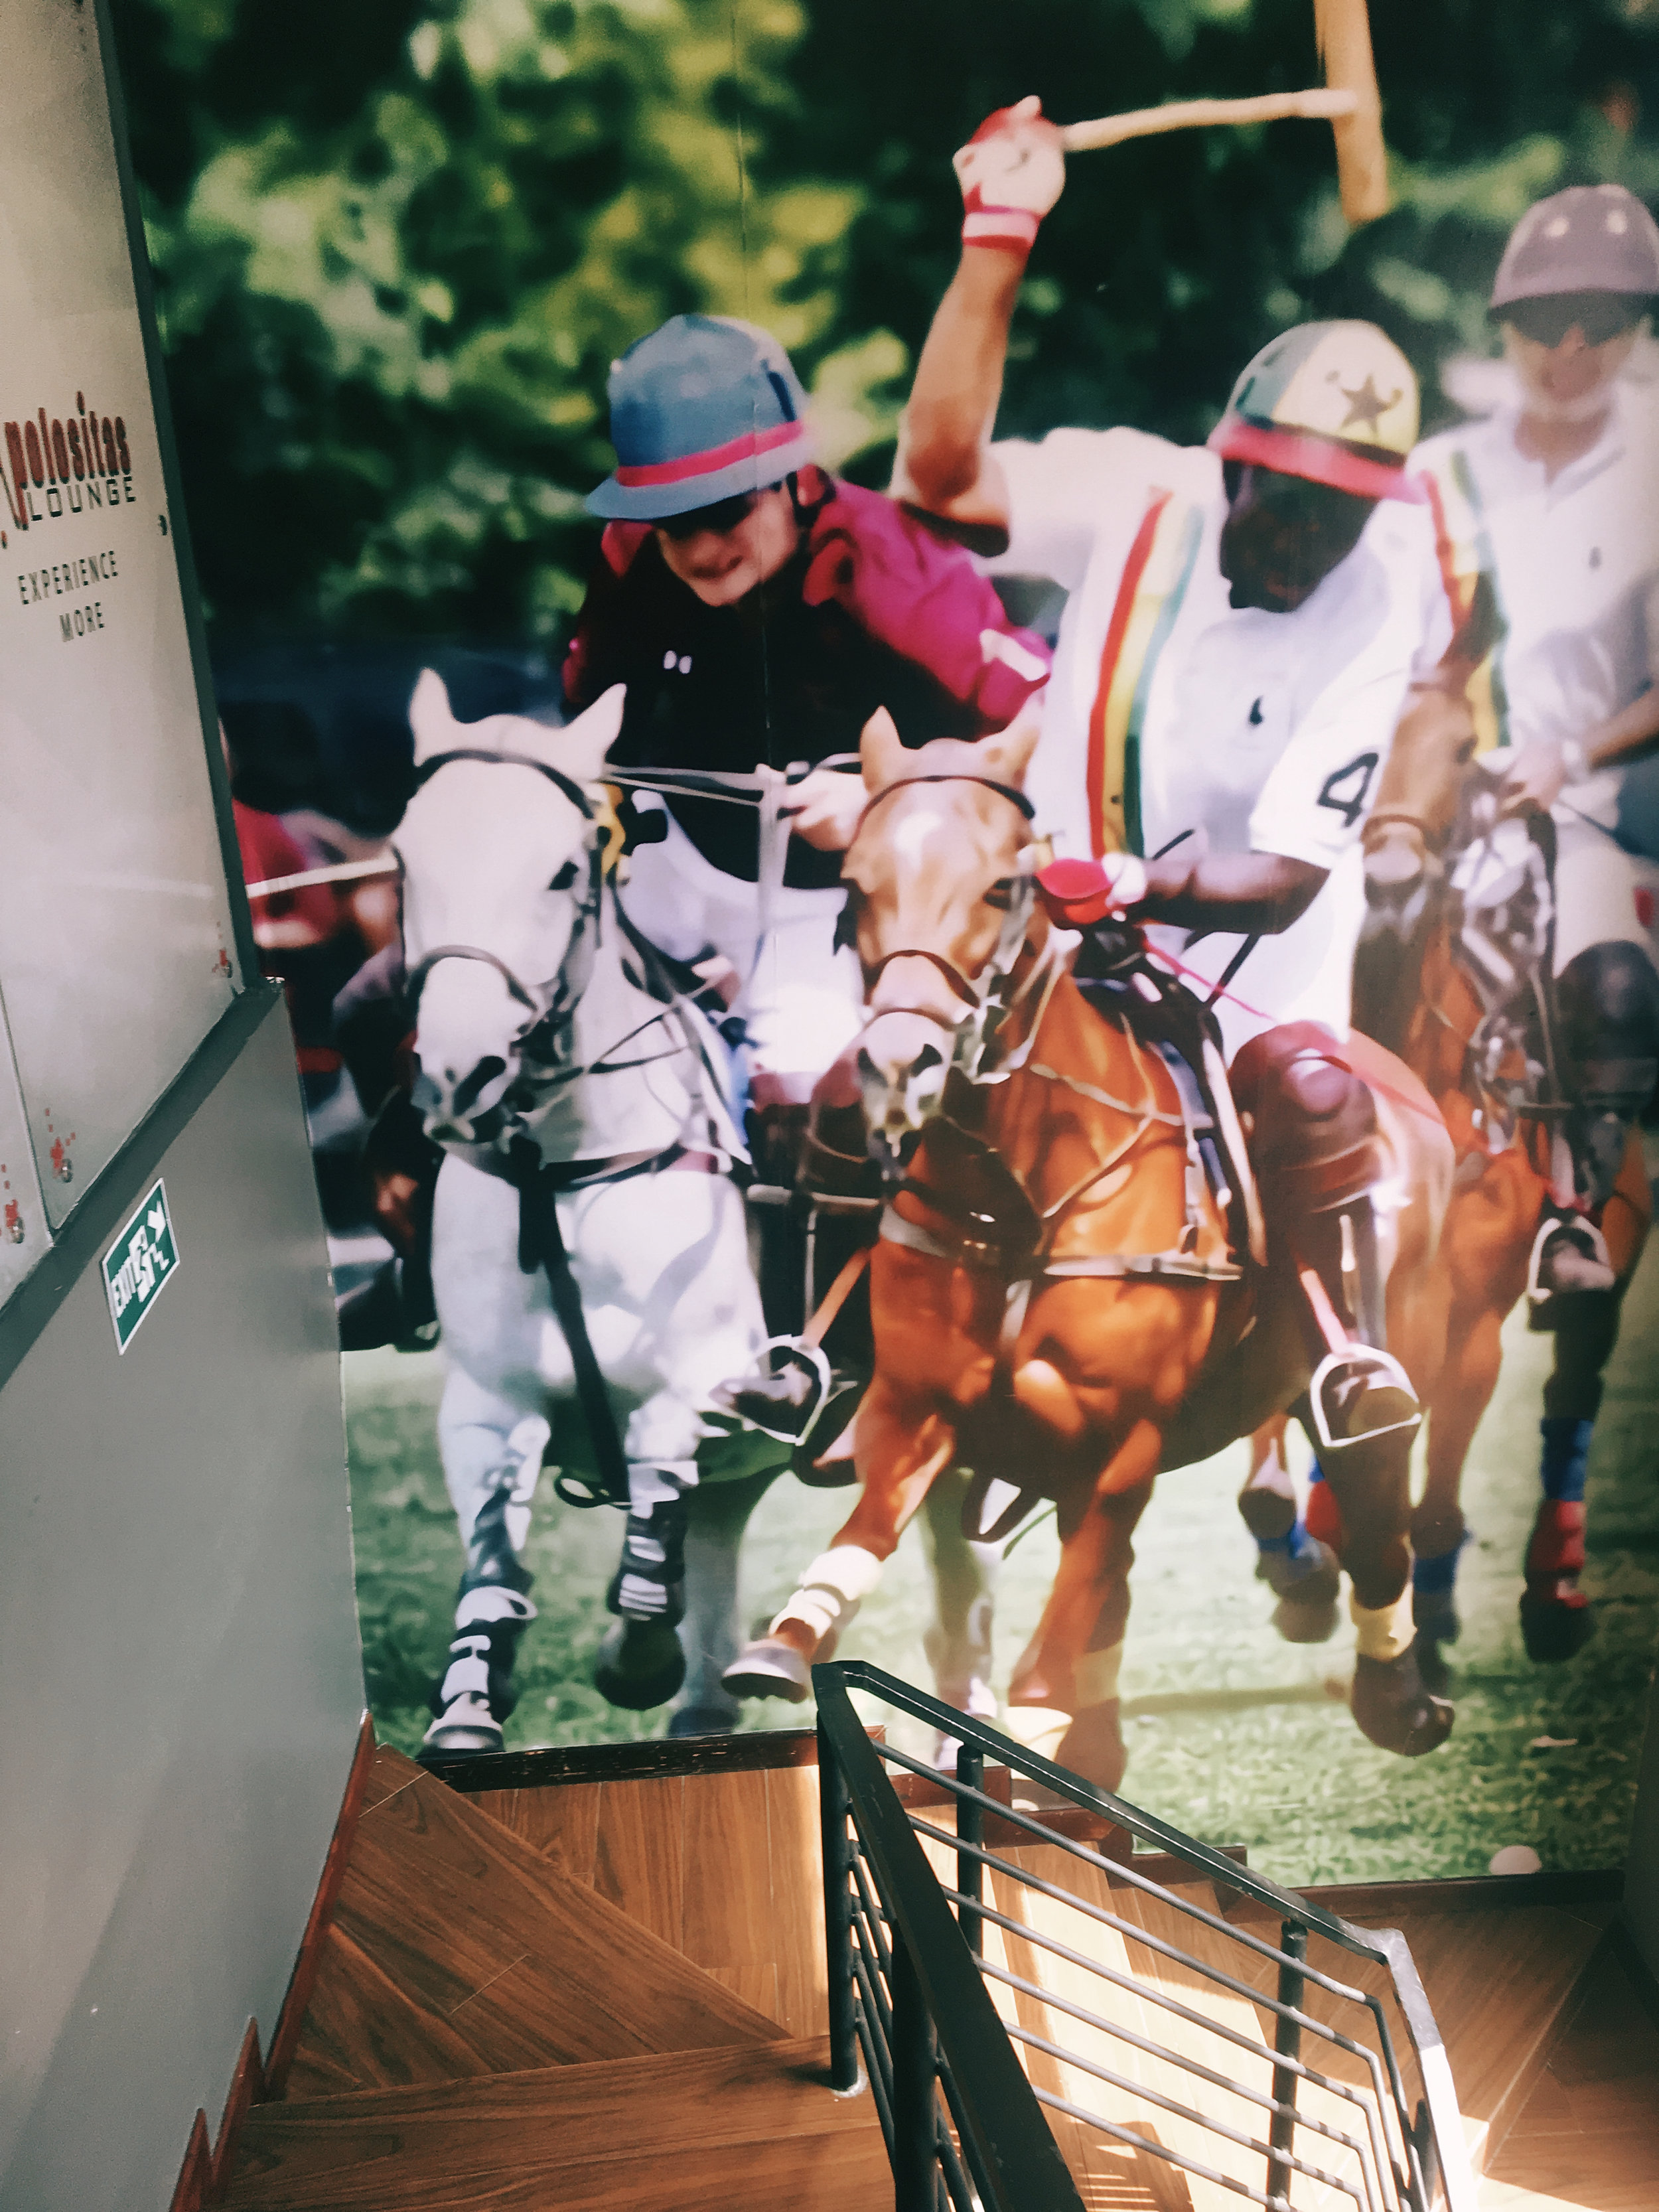 A polo game giving a sports vibe